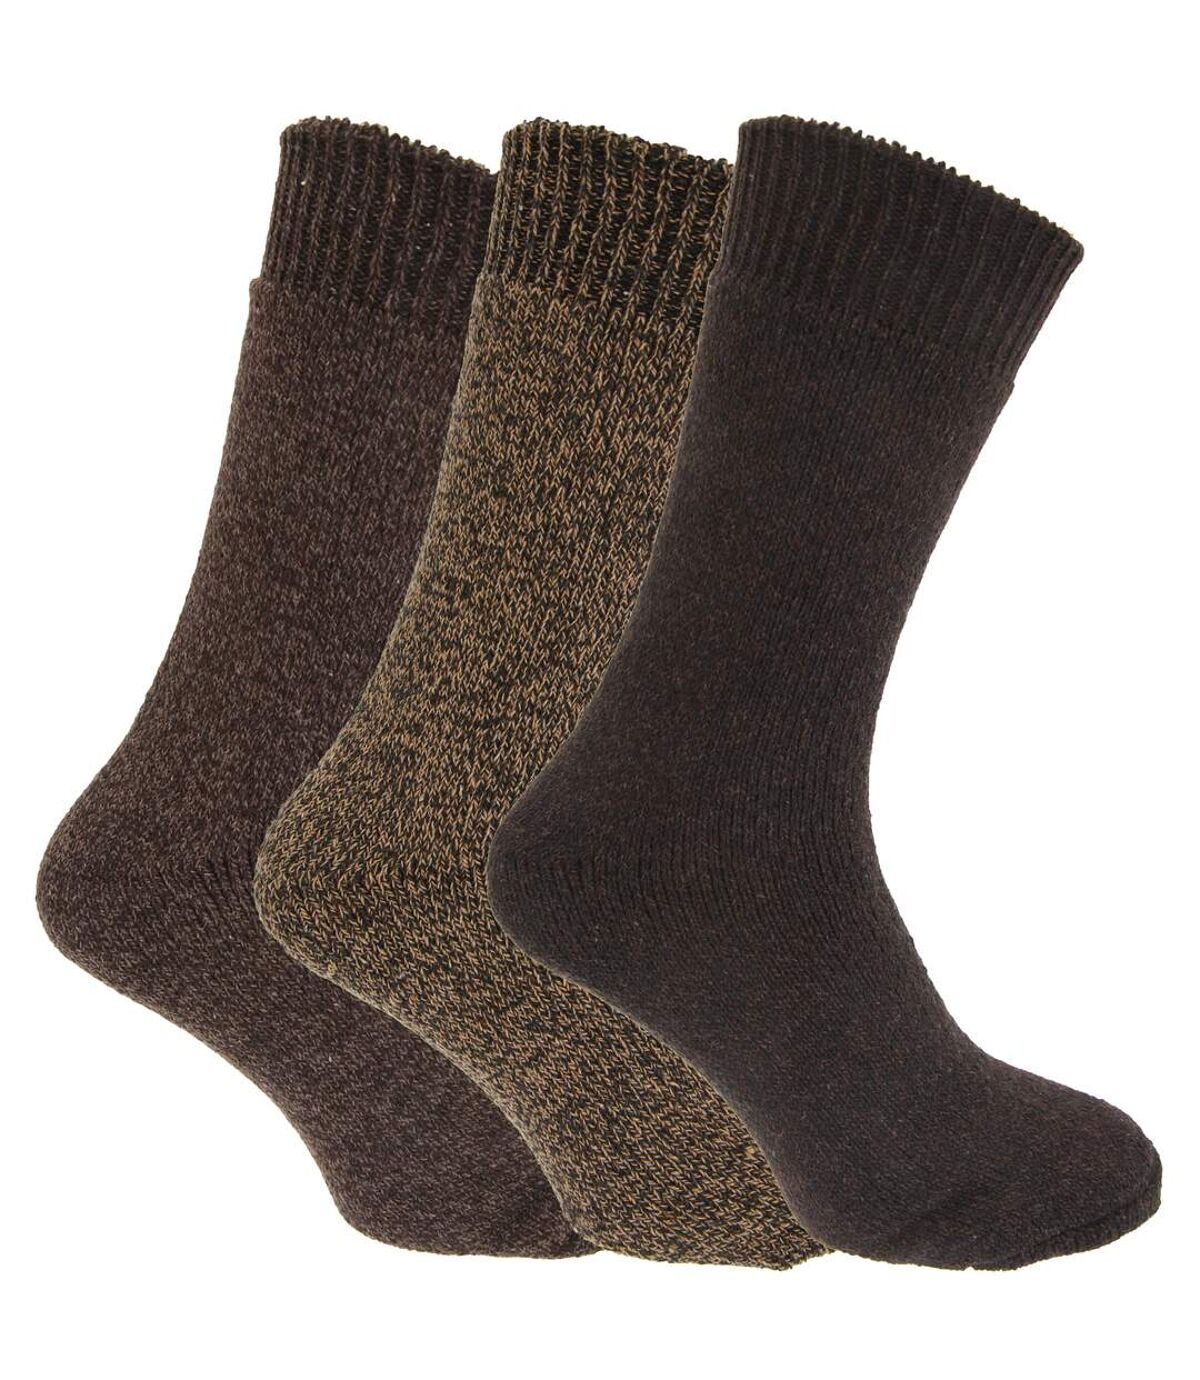 Mens Wool Blend Fully Cushioned Thermal Boot Socks (Pack Of 3) (Shades Of Brown) - UTMB430